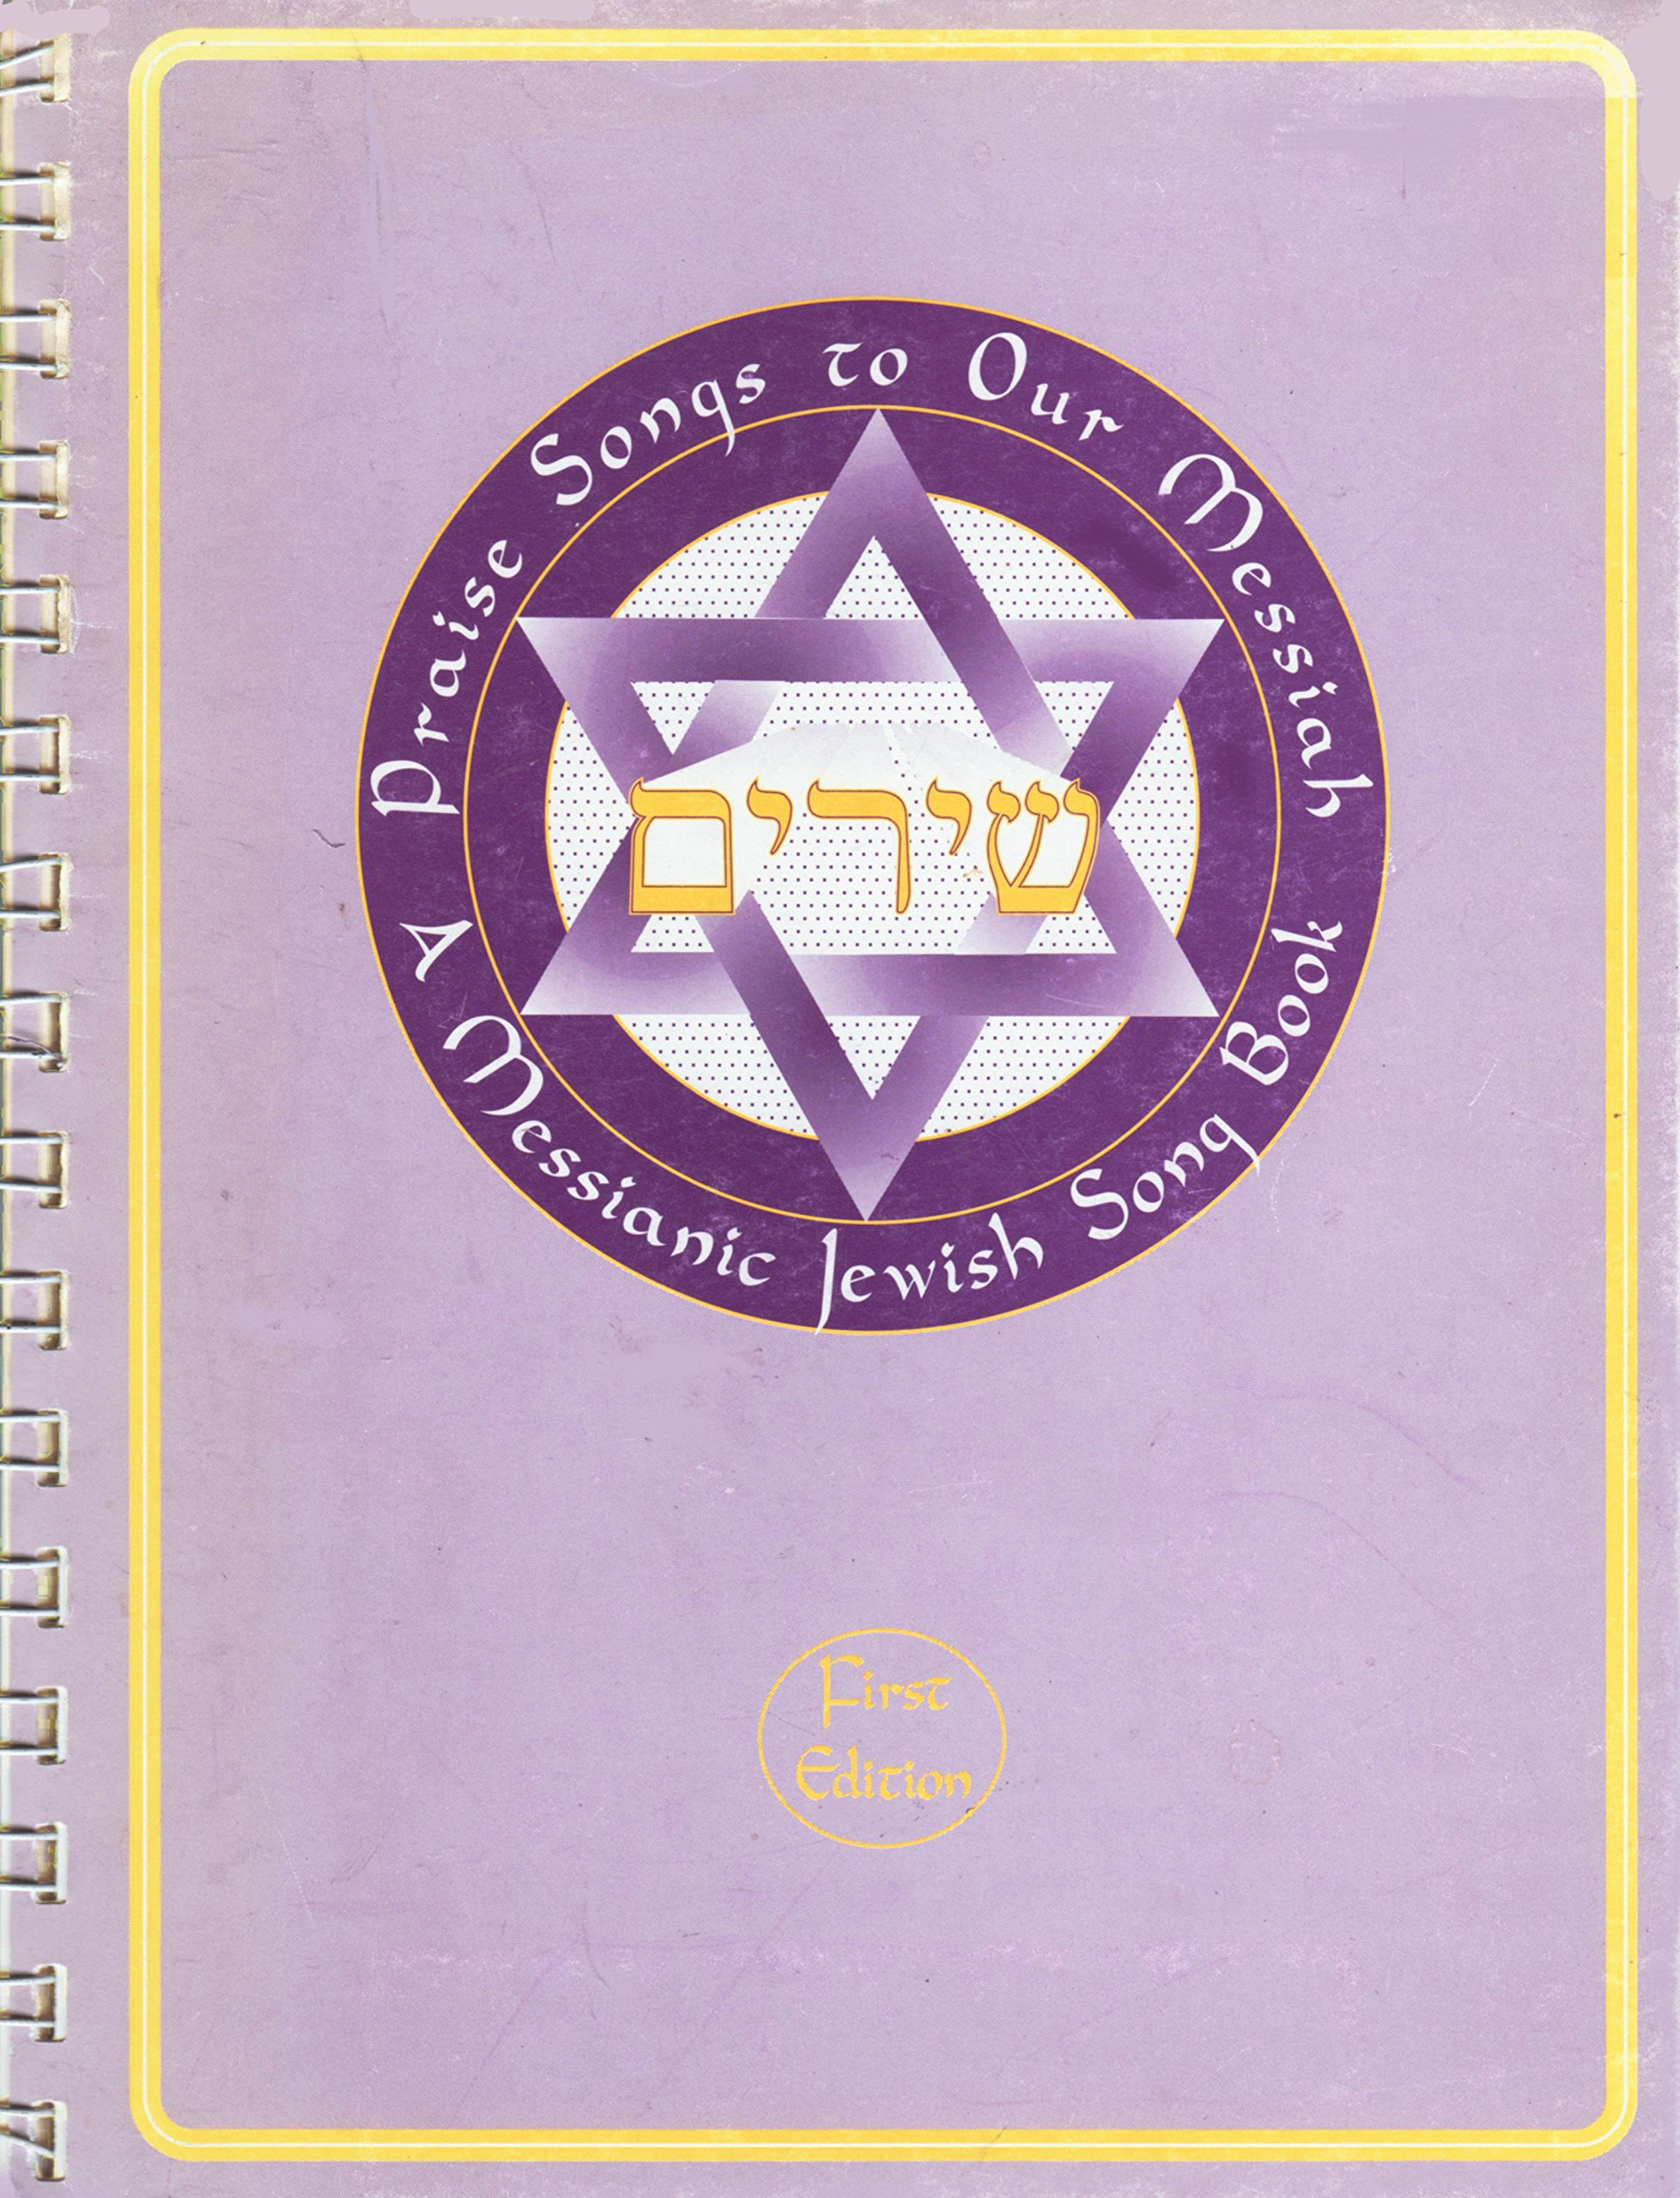 Praise Songs to Our Messiah: A Messianic Jewish Song Book